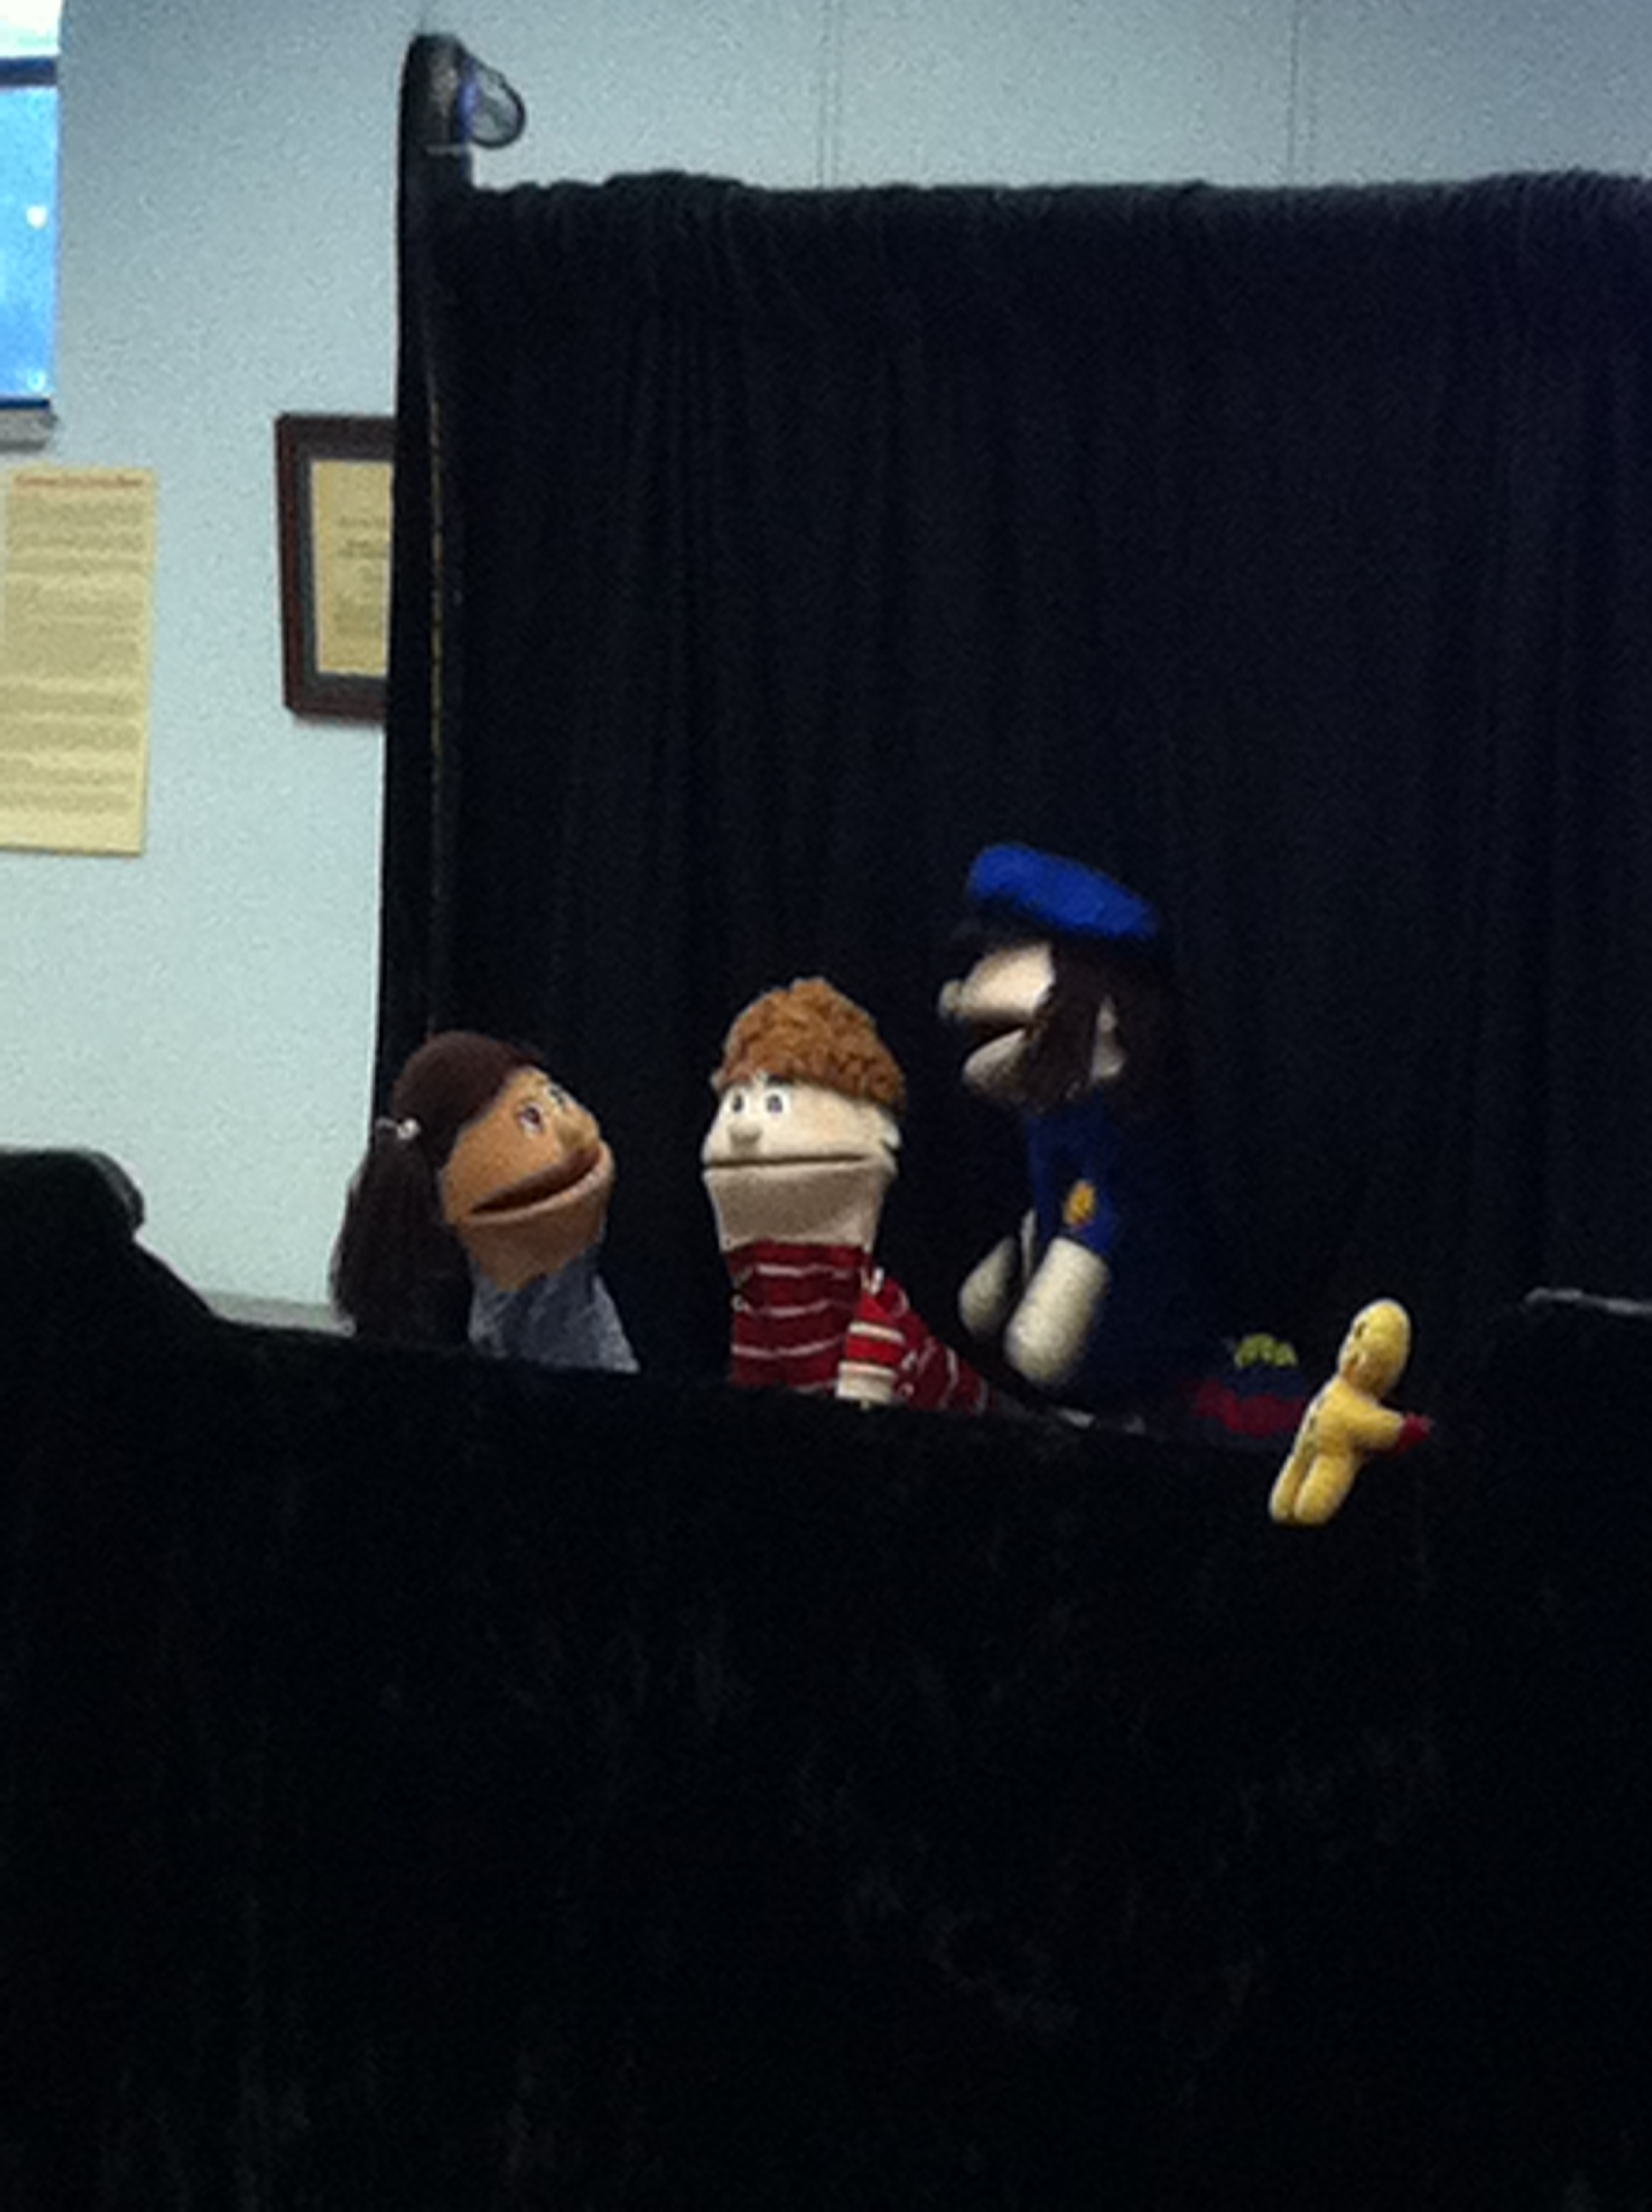 Puppets talk among themselves during the show